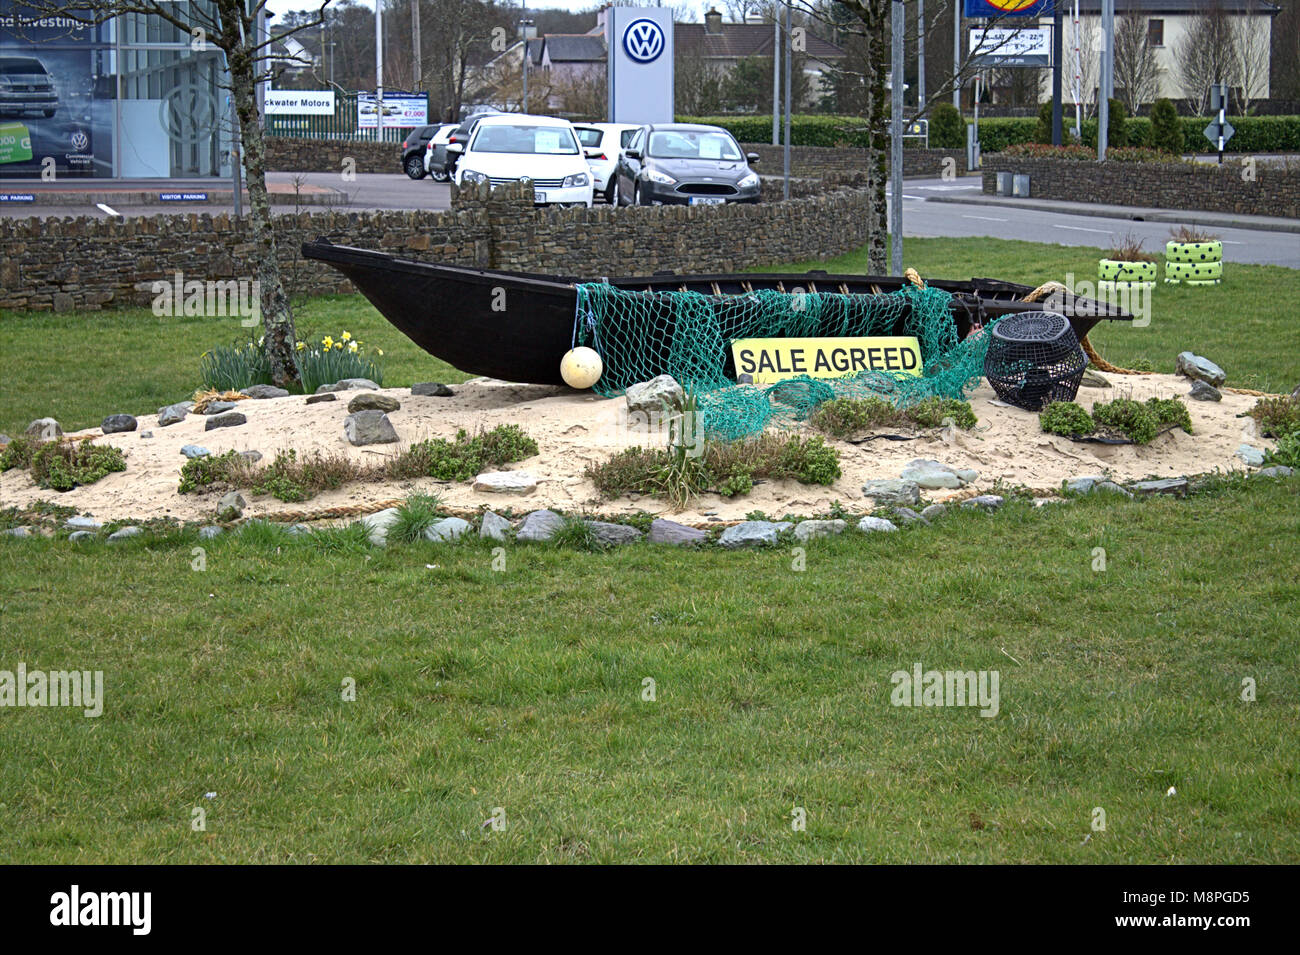 boat-sale-agreed-as-a-roadside-decoration-of-a-roundabout-in-skibbereen-M8PGD5.jpg